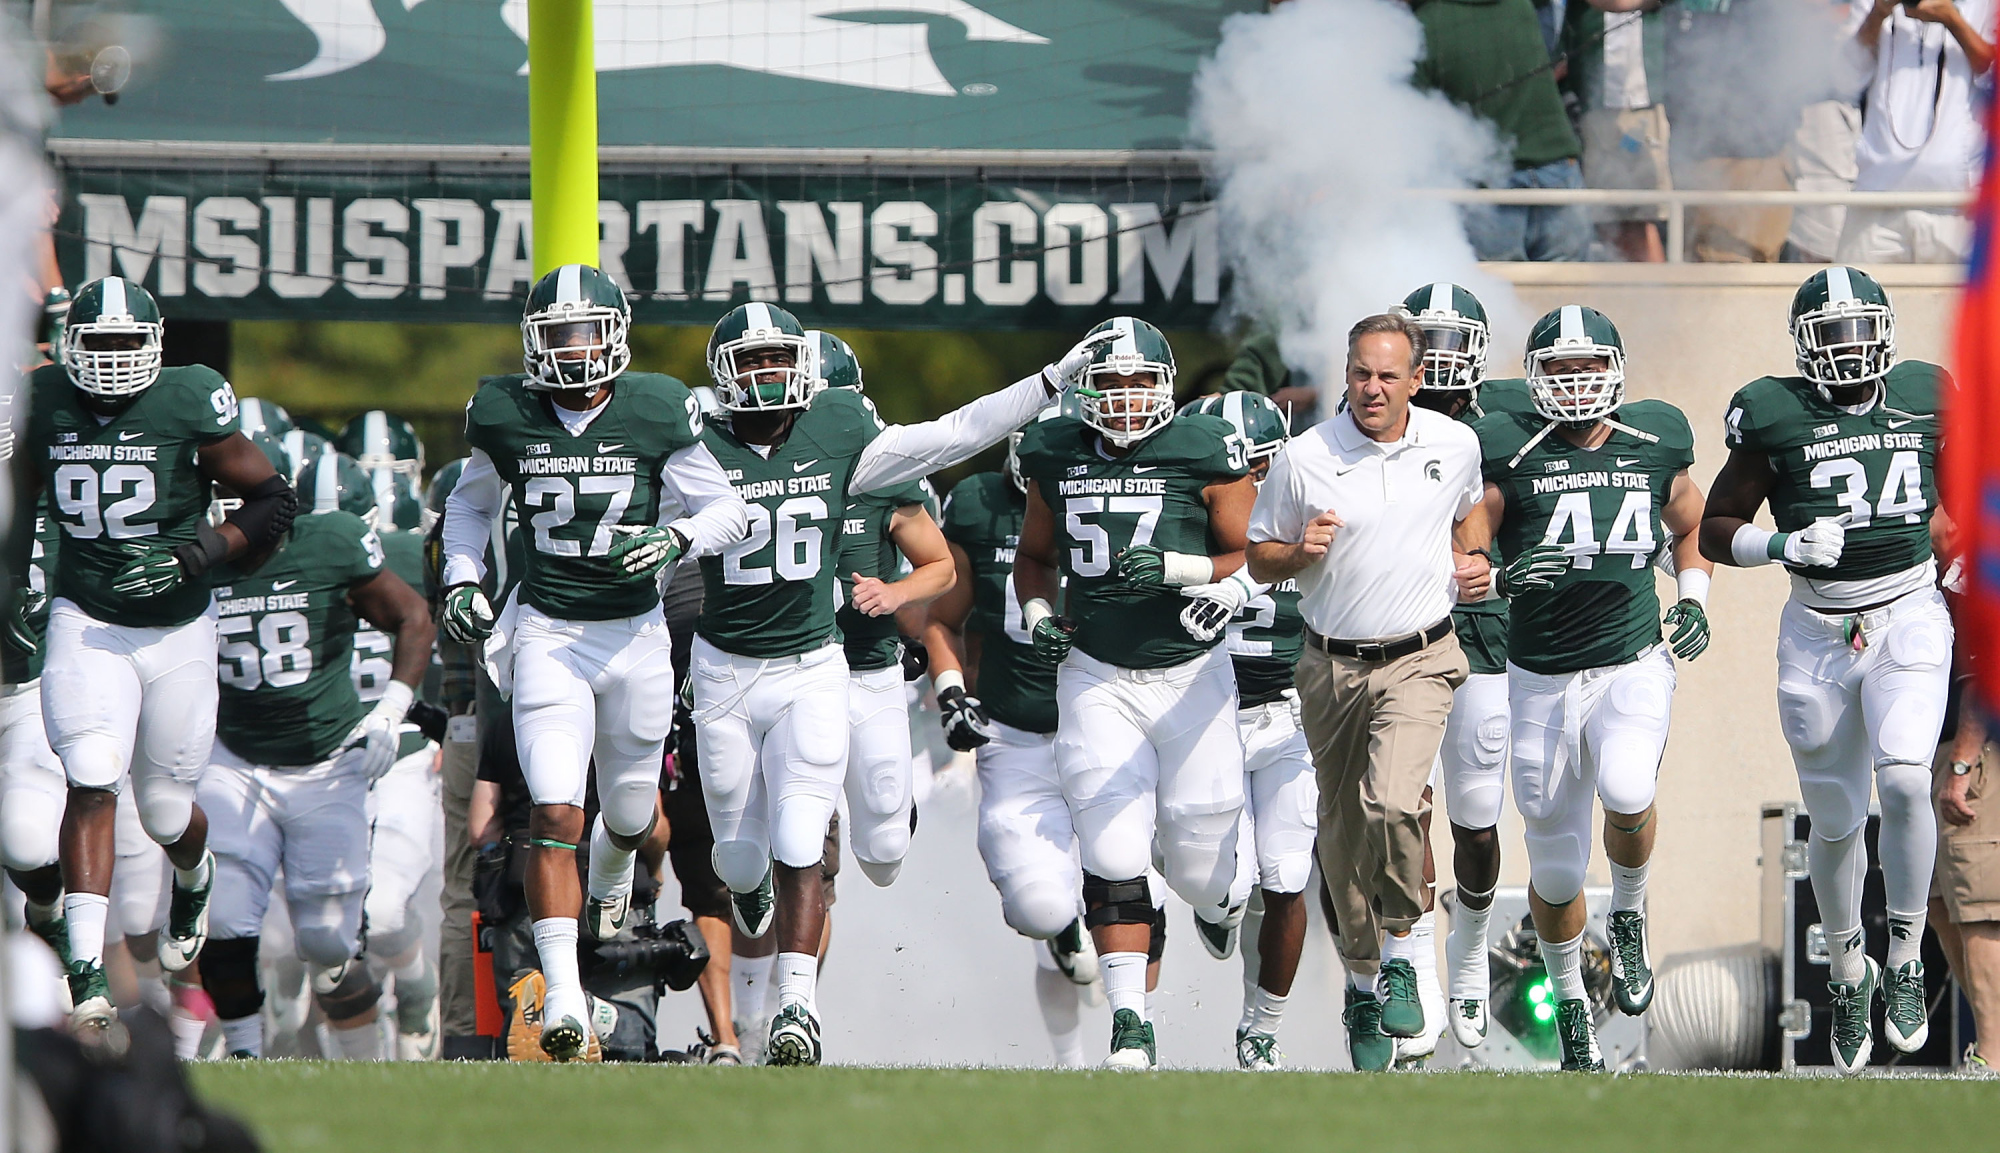 https://thisisspartablogdotcom.files.wordpress.com/2014/10/msu-football-team-entrance.jpg